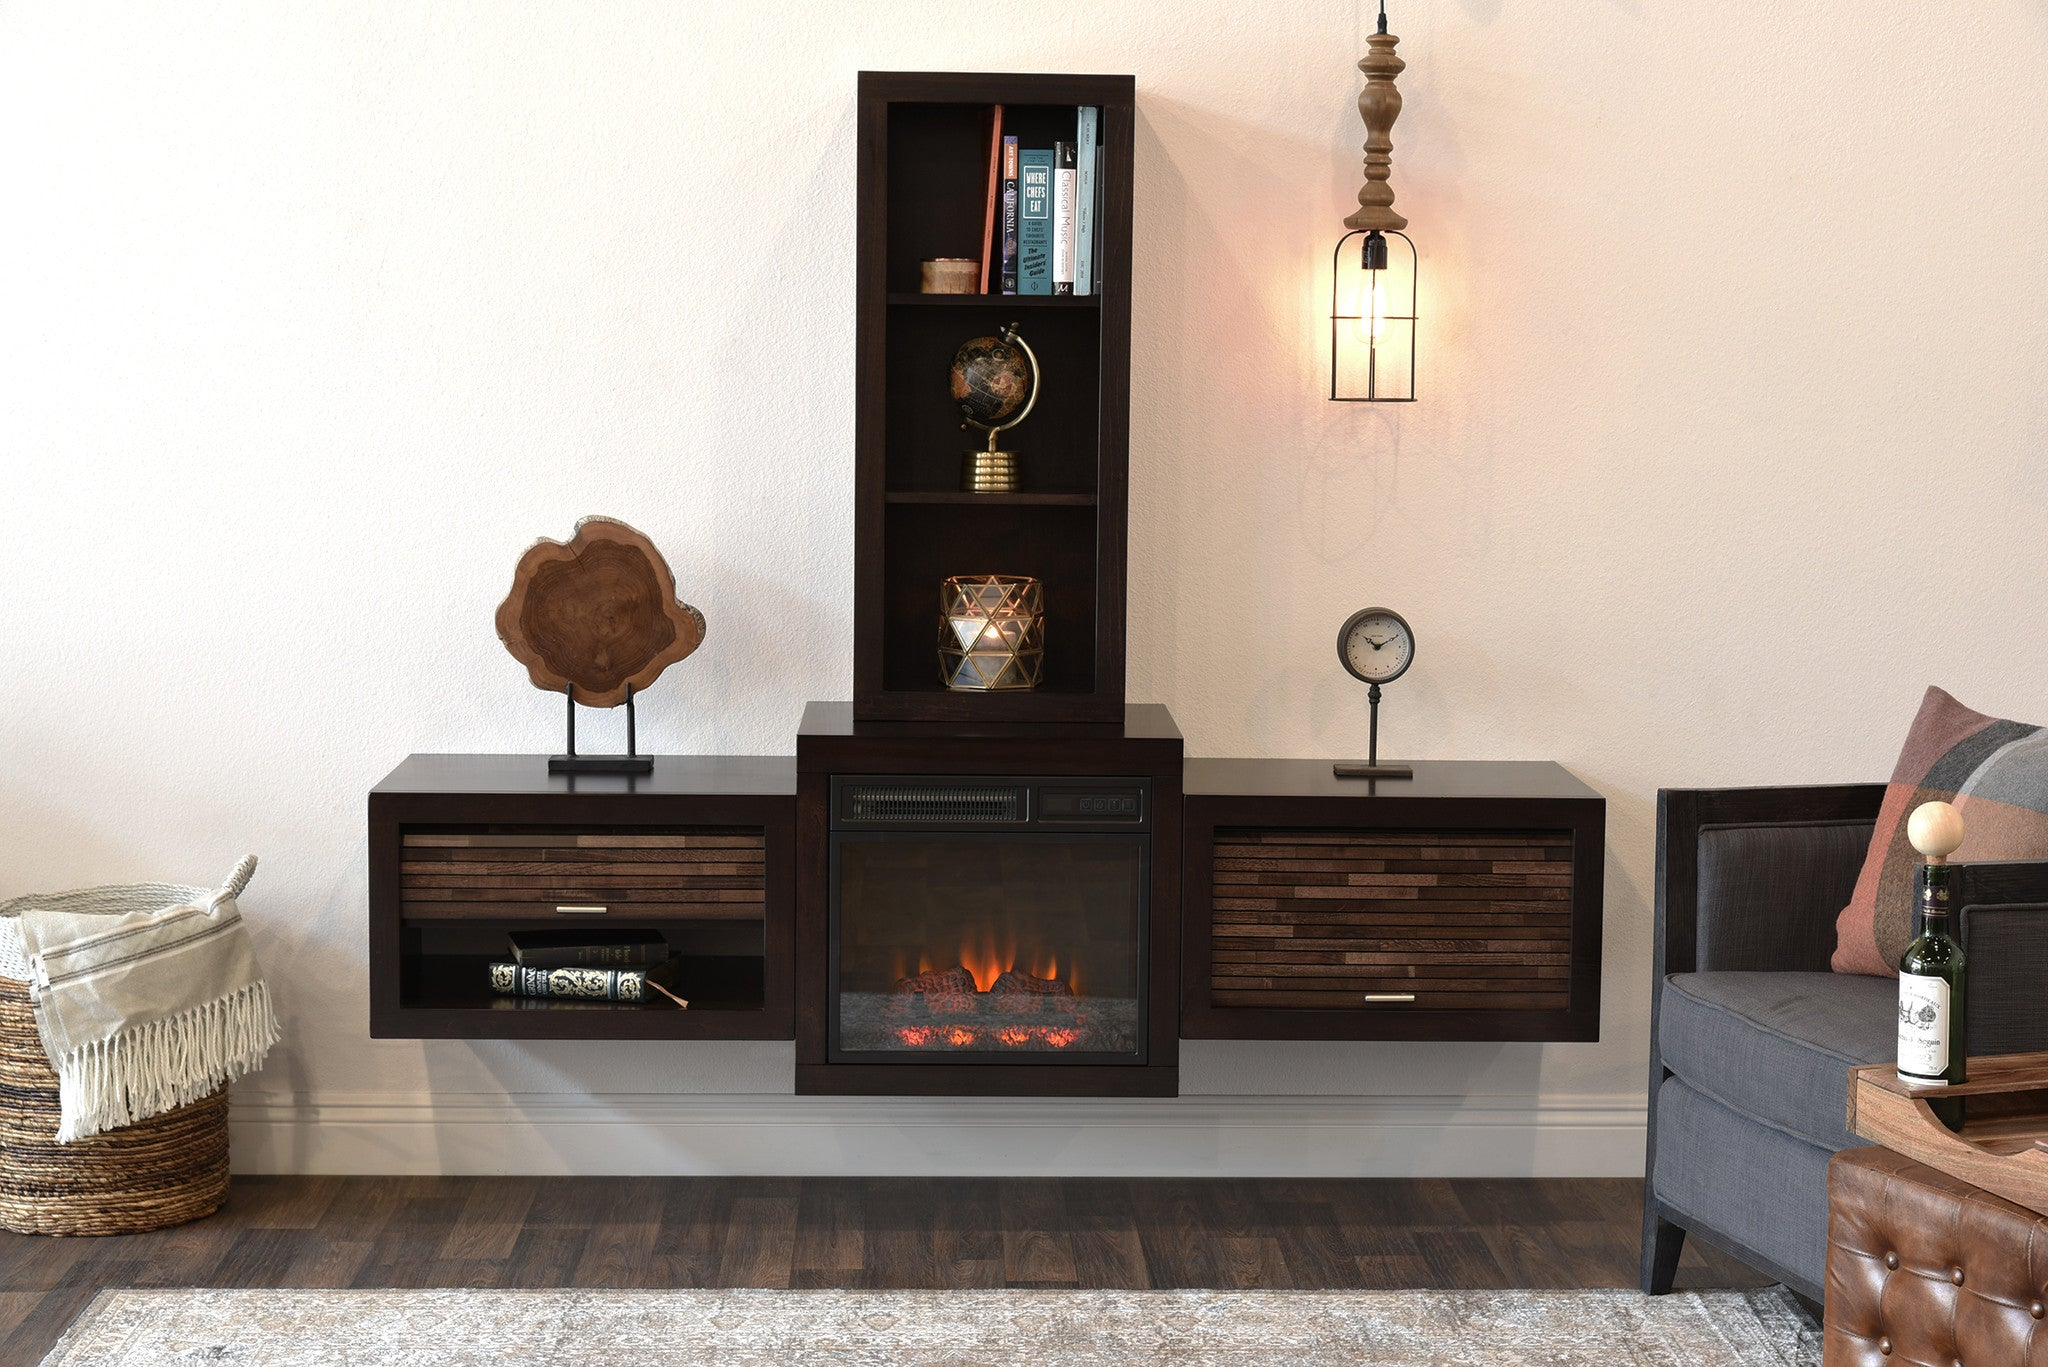 Floating Wall Mount Media Console With Fireplace and Bookcase